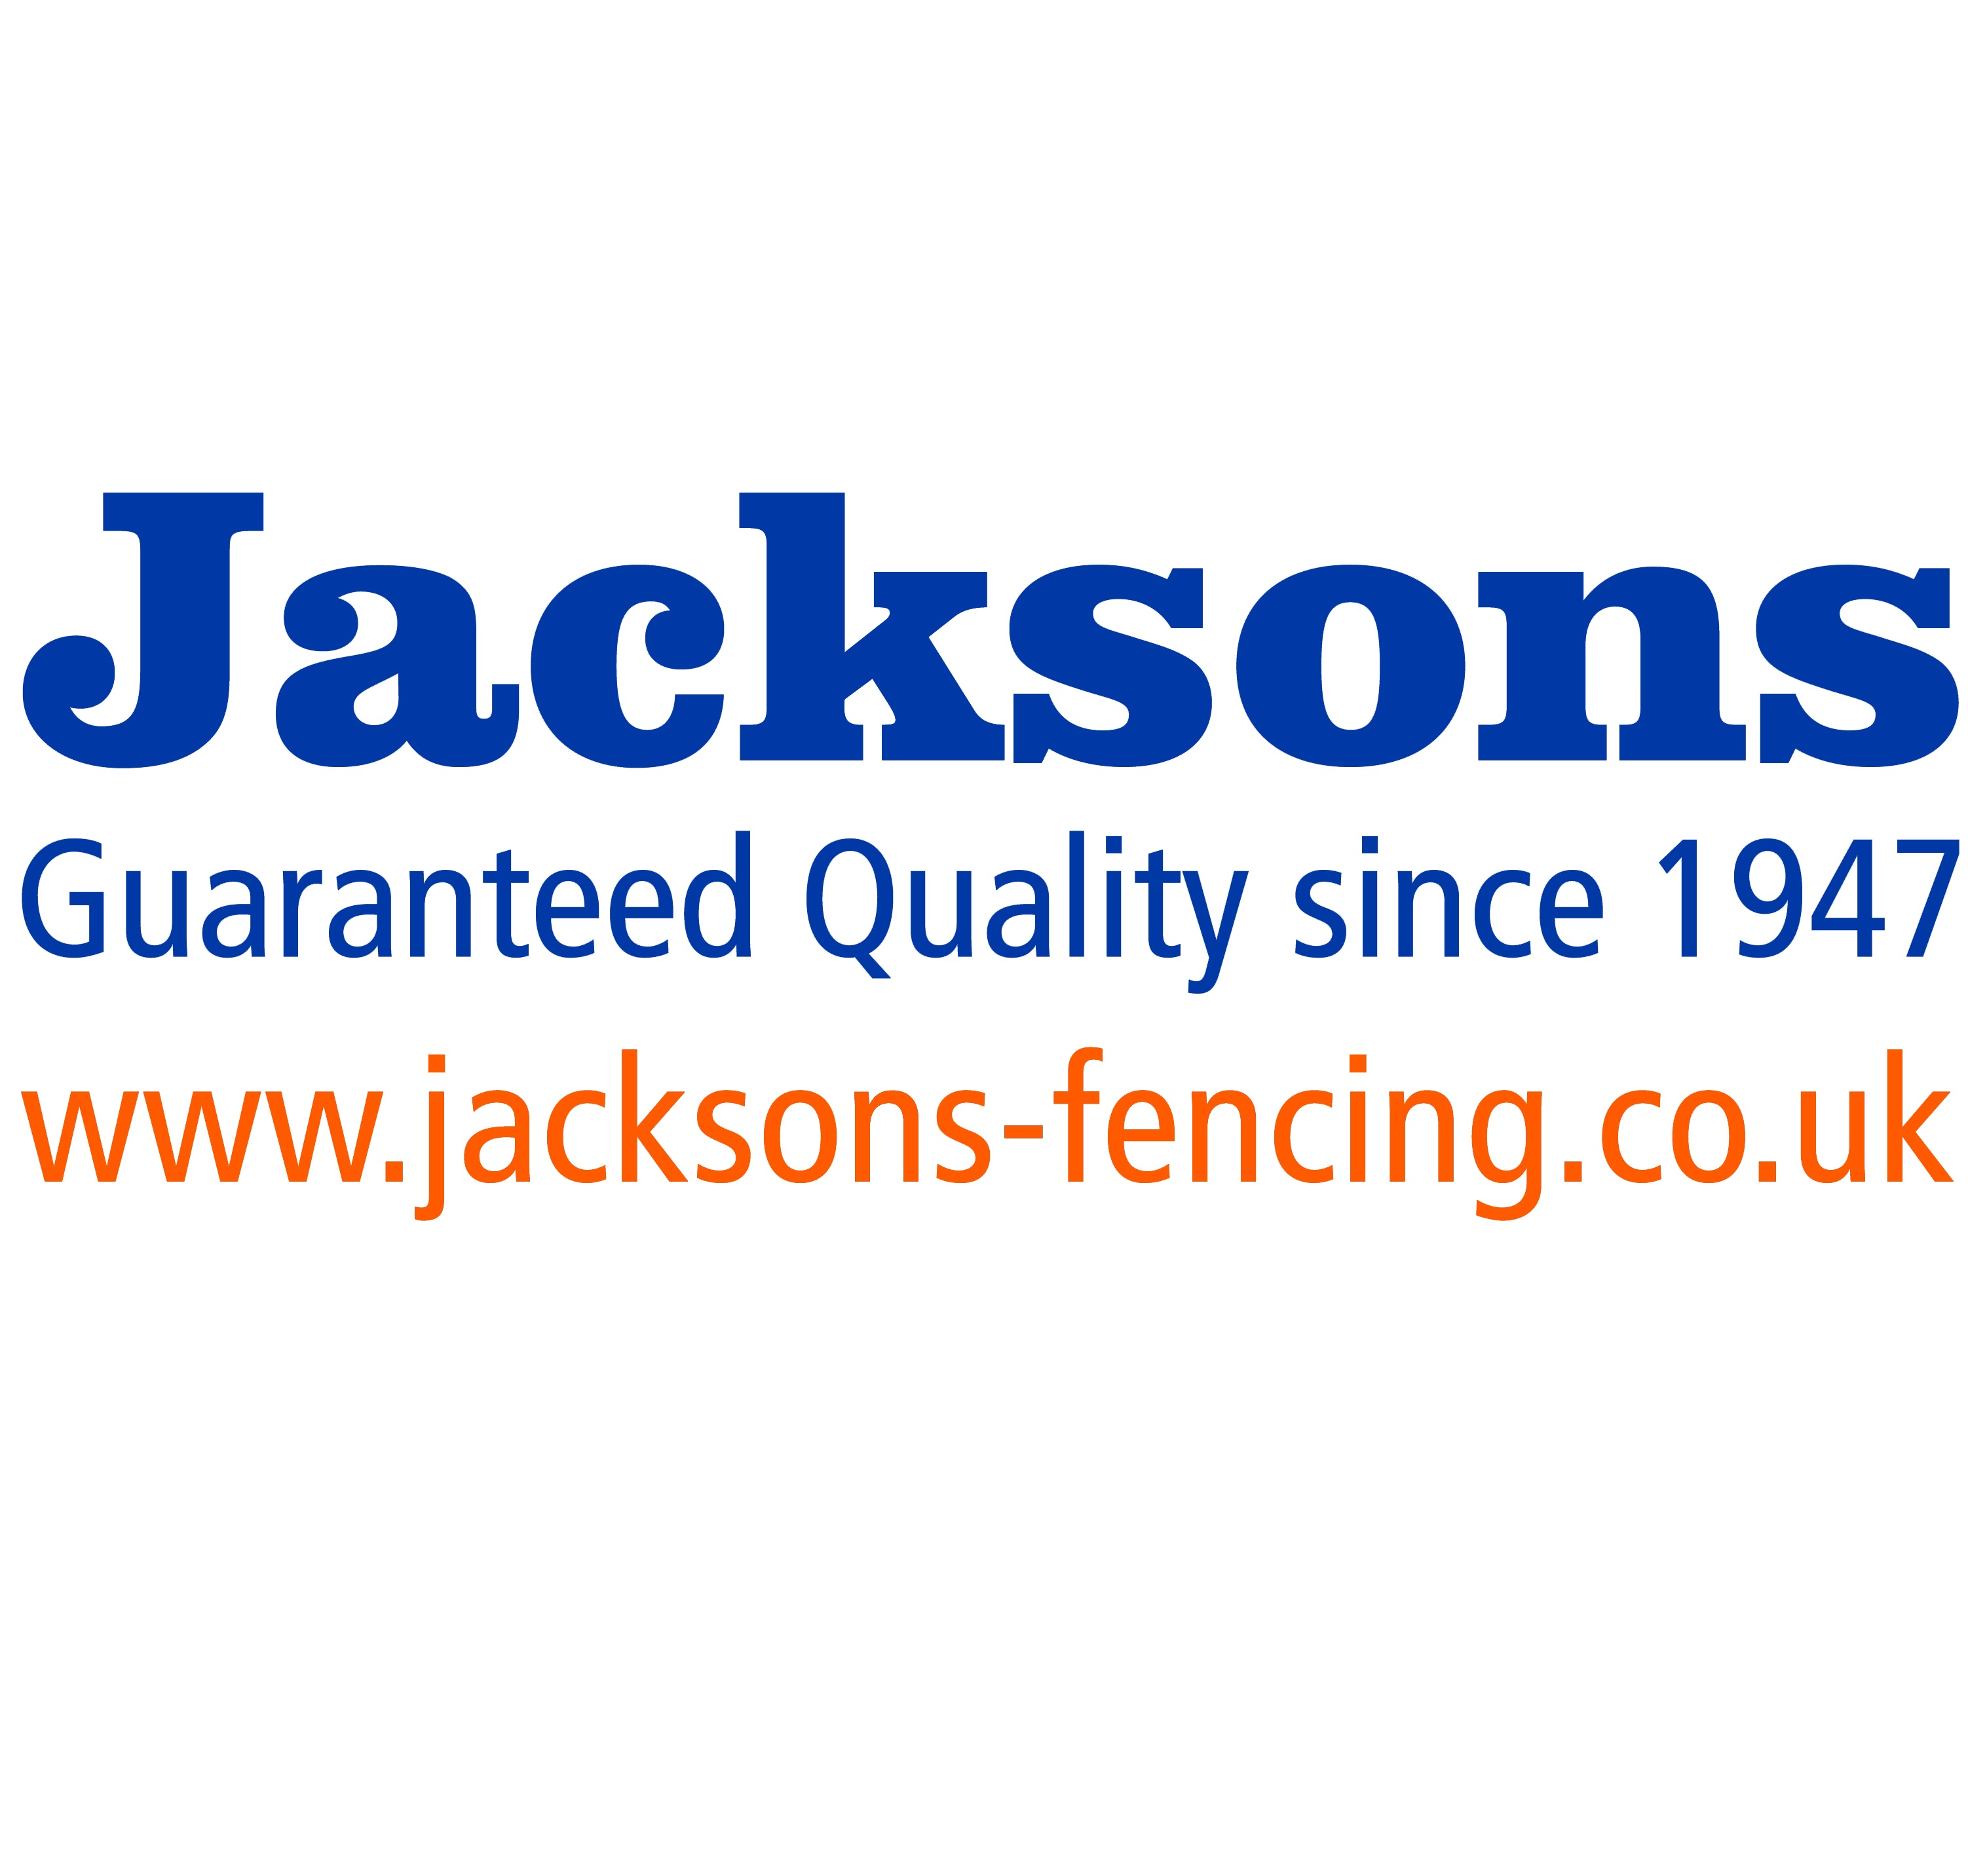 Jacksons Fencing - www.jacksons-fencing.co.uk